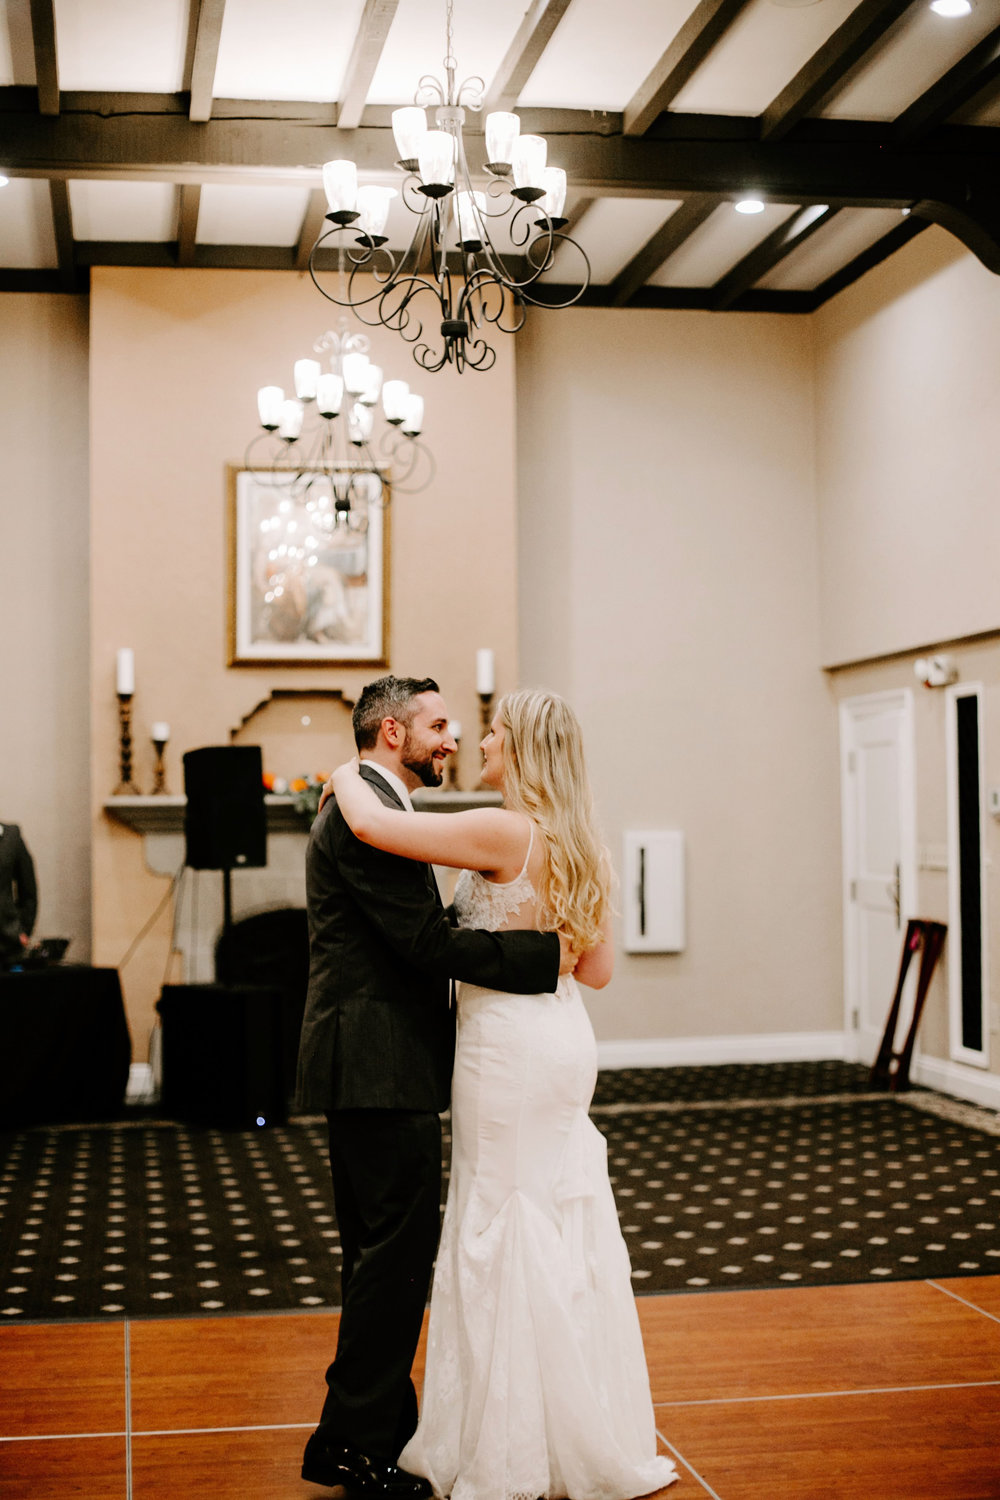 Shelby and Roger Hillcrest Country Club Wedding Indianapolis Indiana Emily Elyse Wehner Photography LLC-680.jpg